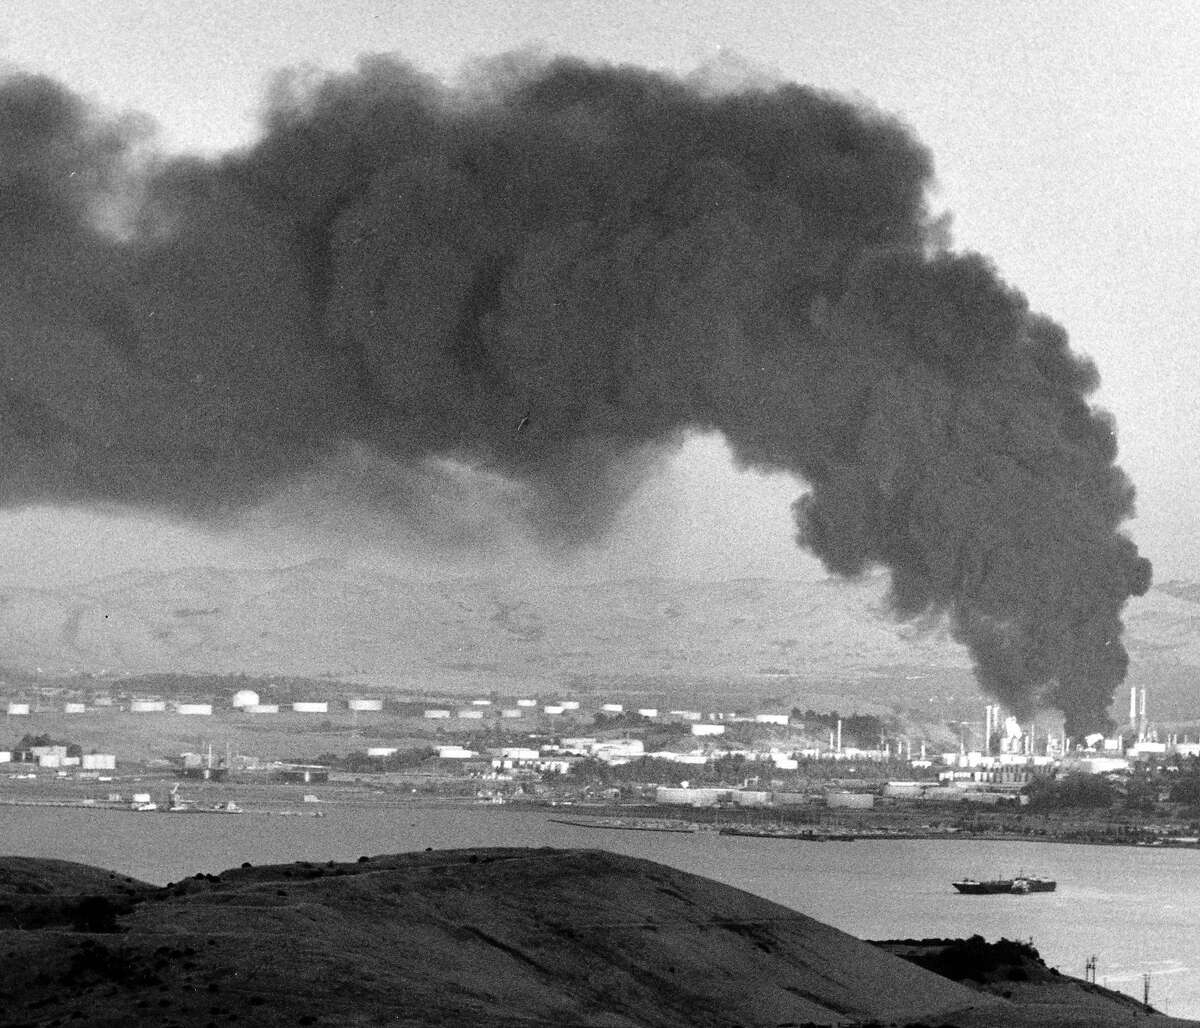 Fire at the Shell Refinery as seen from Crocket, Calif. September 5, 1989